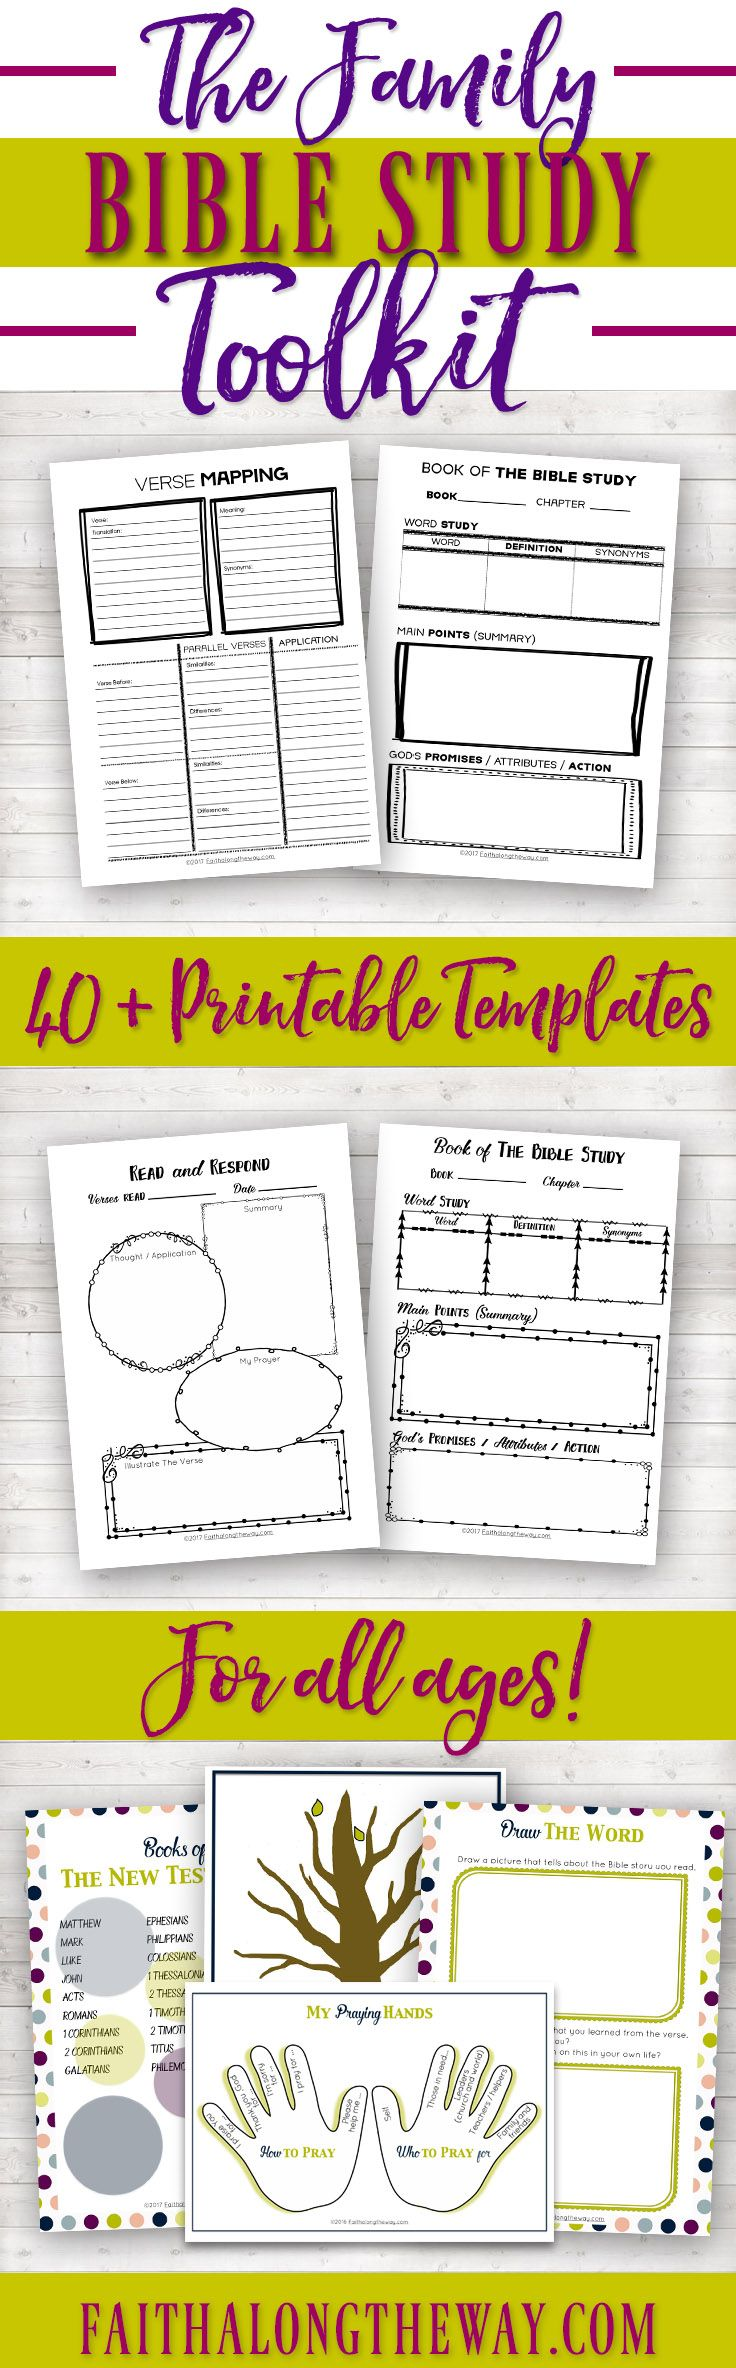 Make Bible study and family devotions SIMPLE & PRACTICAL with the Family Bible Study Toolkit.  Learn how to study the Bible with help from these templates & teach your children to love the Lord. (aff)